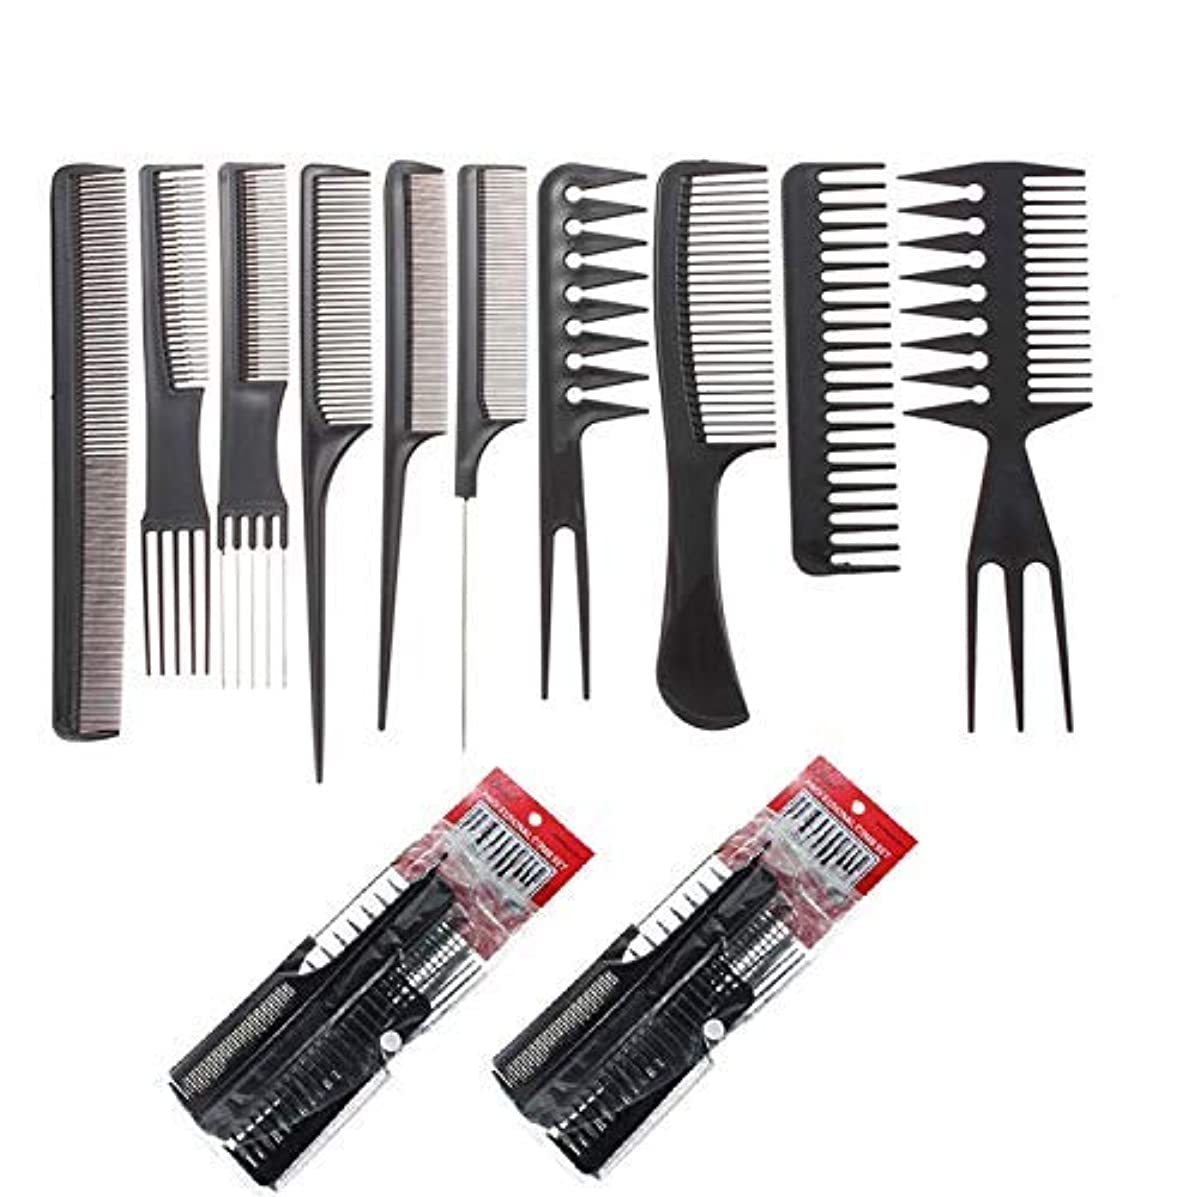 判決頼る宇宙SBYURE 20pcs Professional Styling Comb Set,10pcs/Set,2 Set Salon Hairdressing Combs Hair Care Styling Tools Hair...